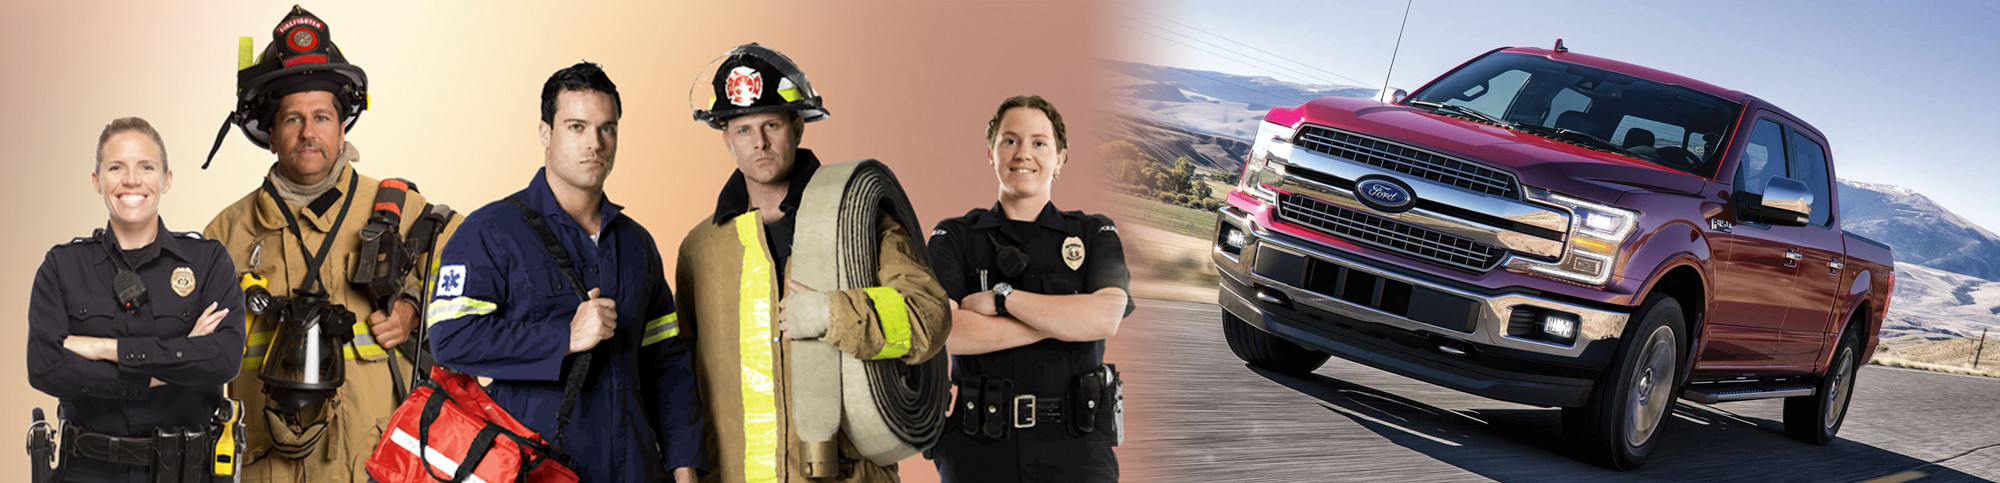 Ford first responders discount